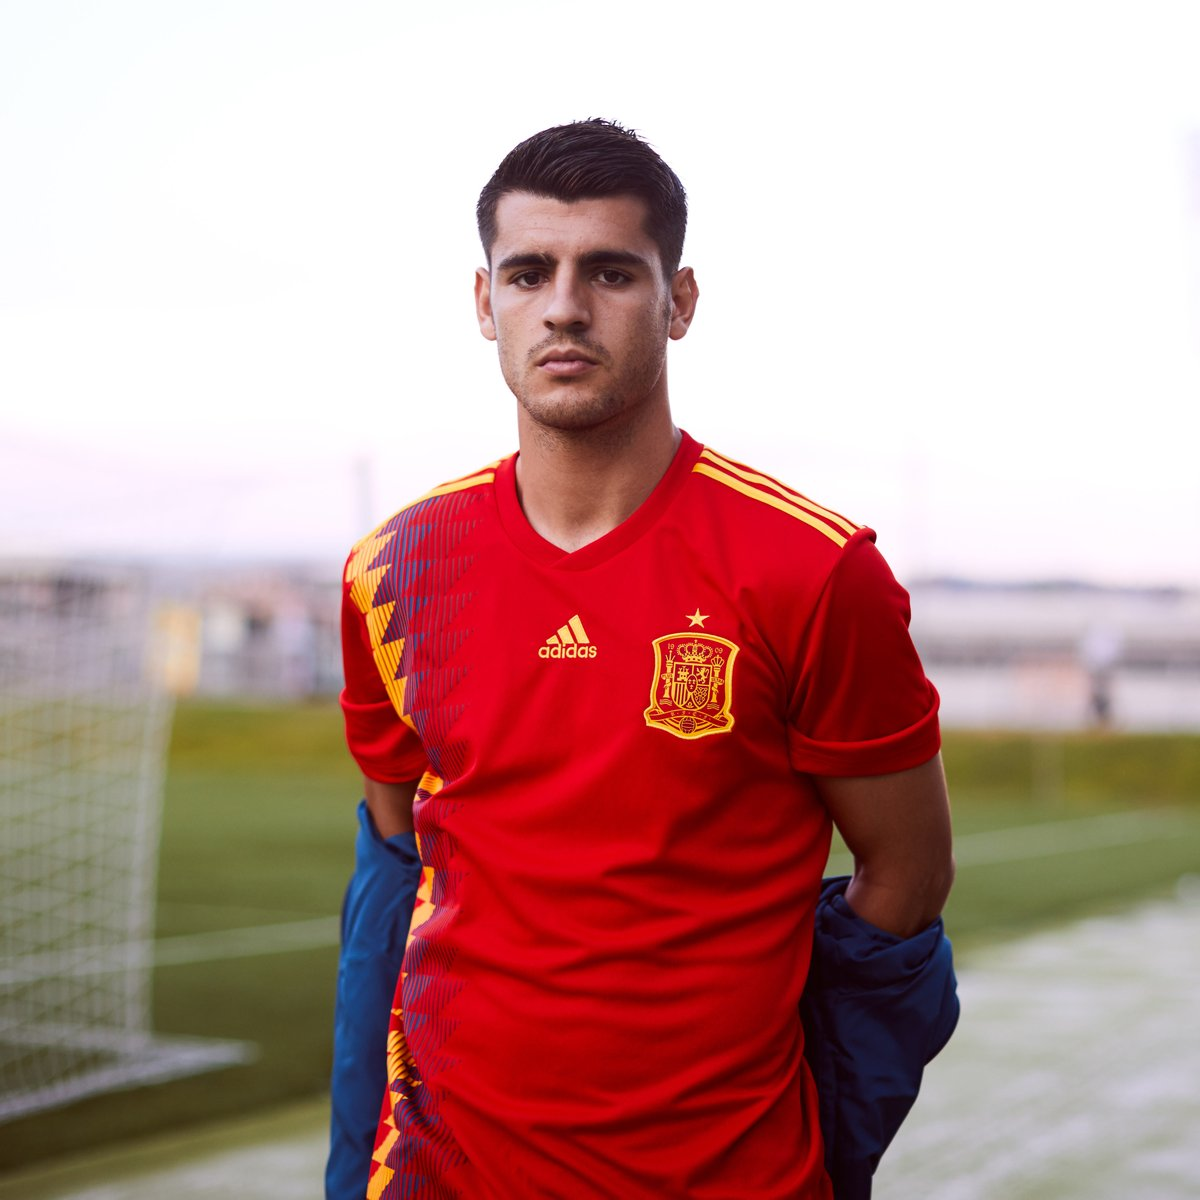 a90e010f3 Full story  http   www.concaholic.com sports russia-2018-adidas-unveils- world-cup-kits-spain-germany